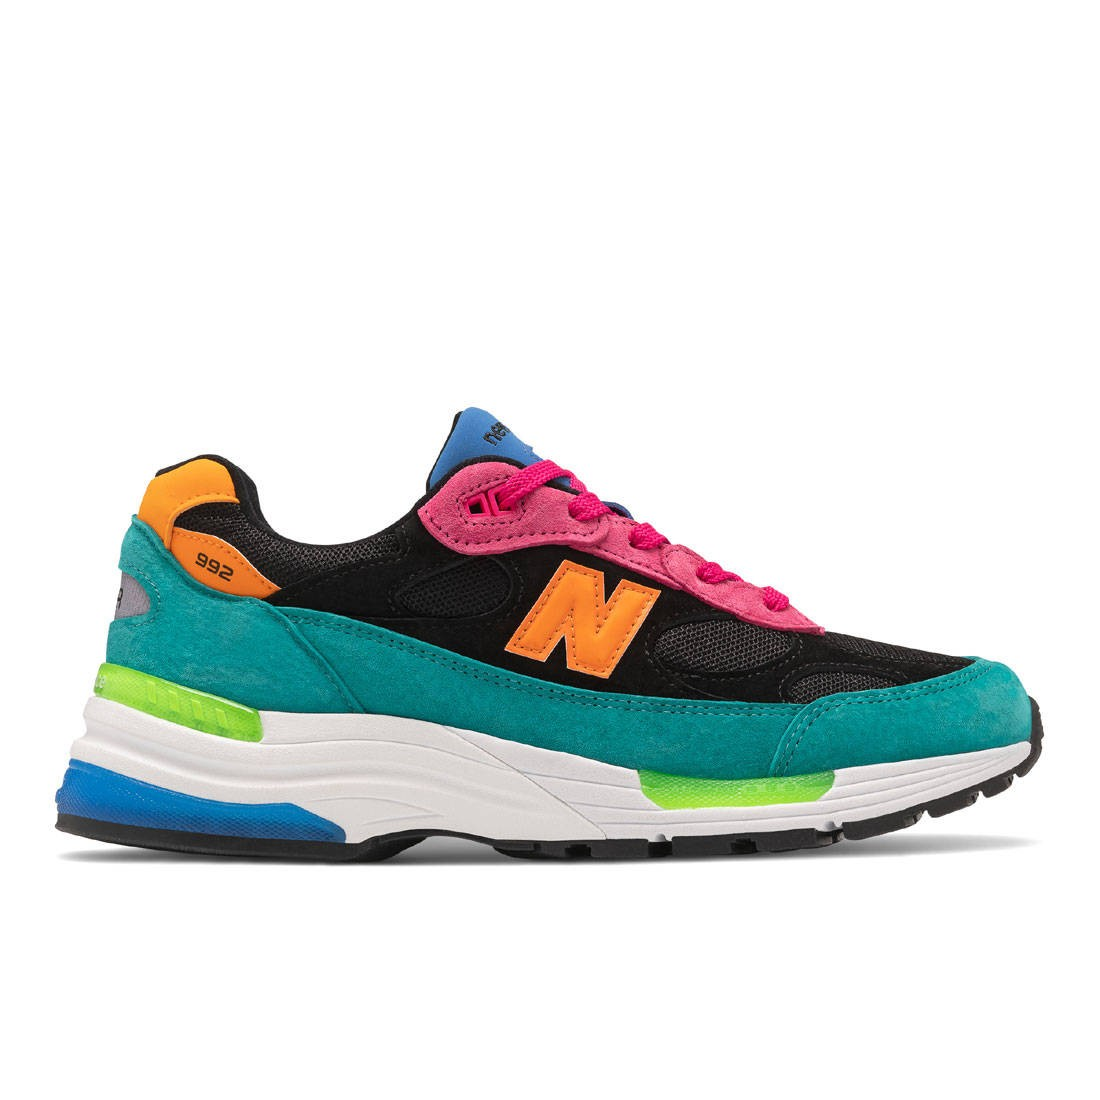 new balance men 992 m992re made in usa